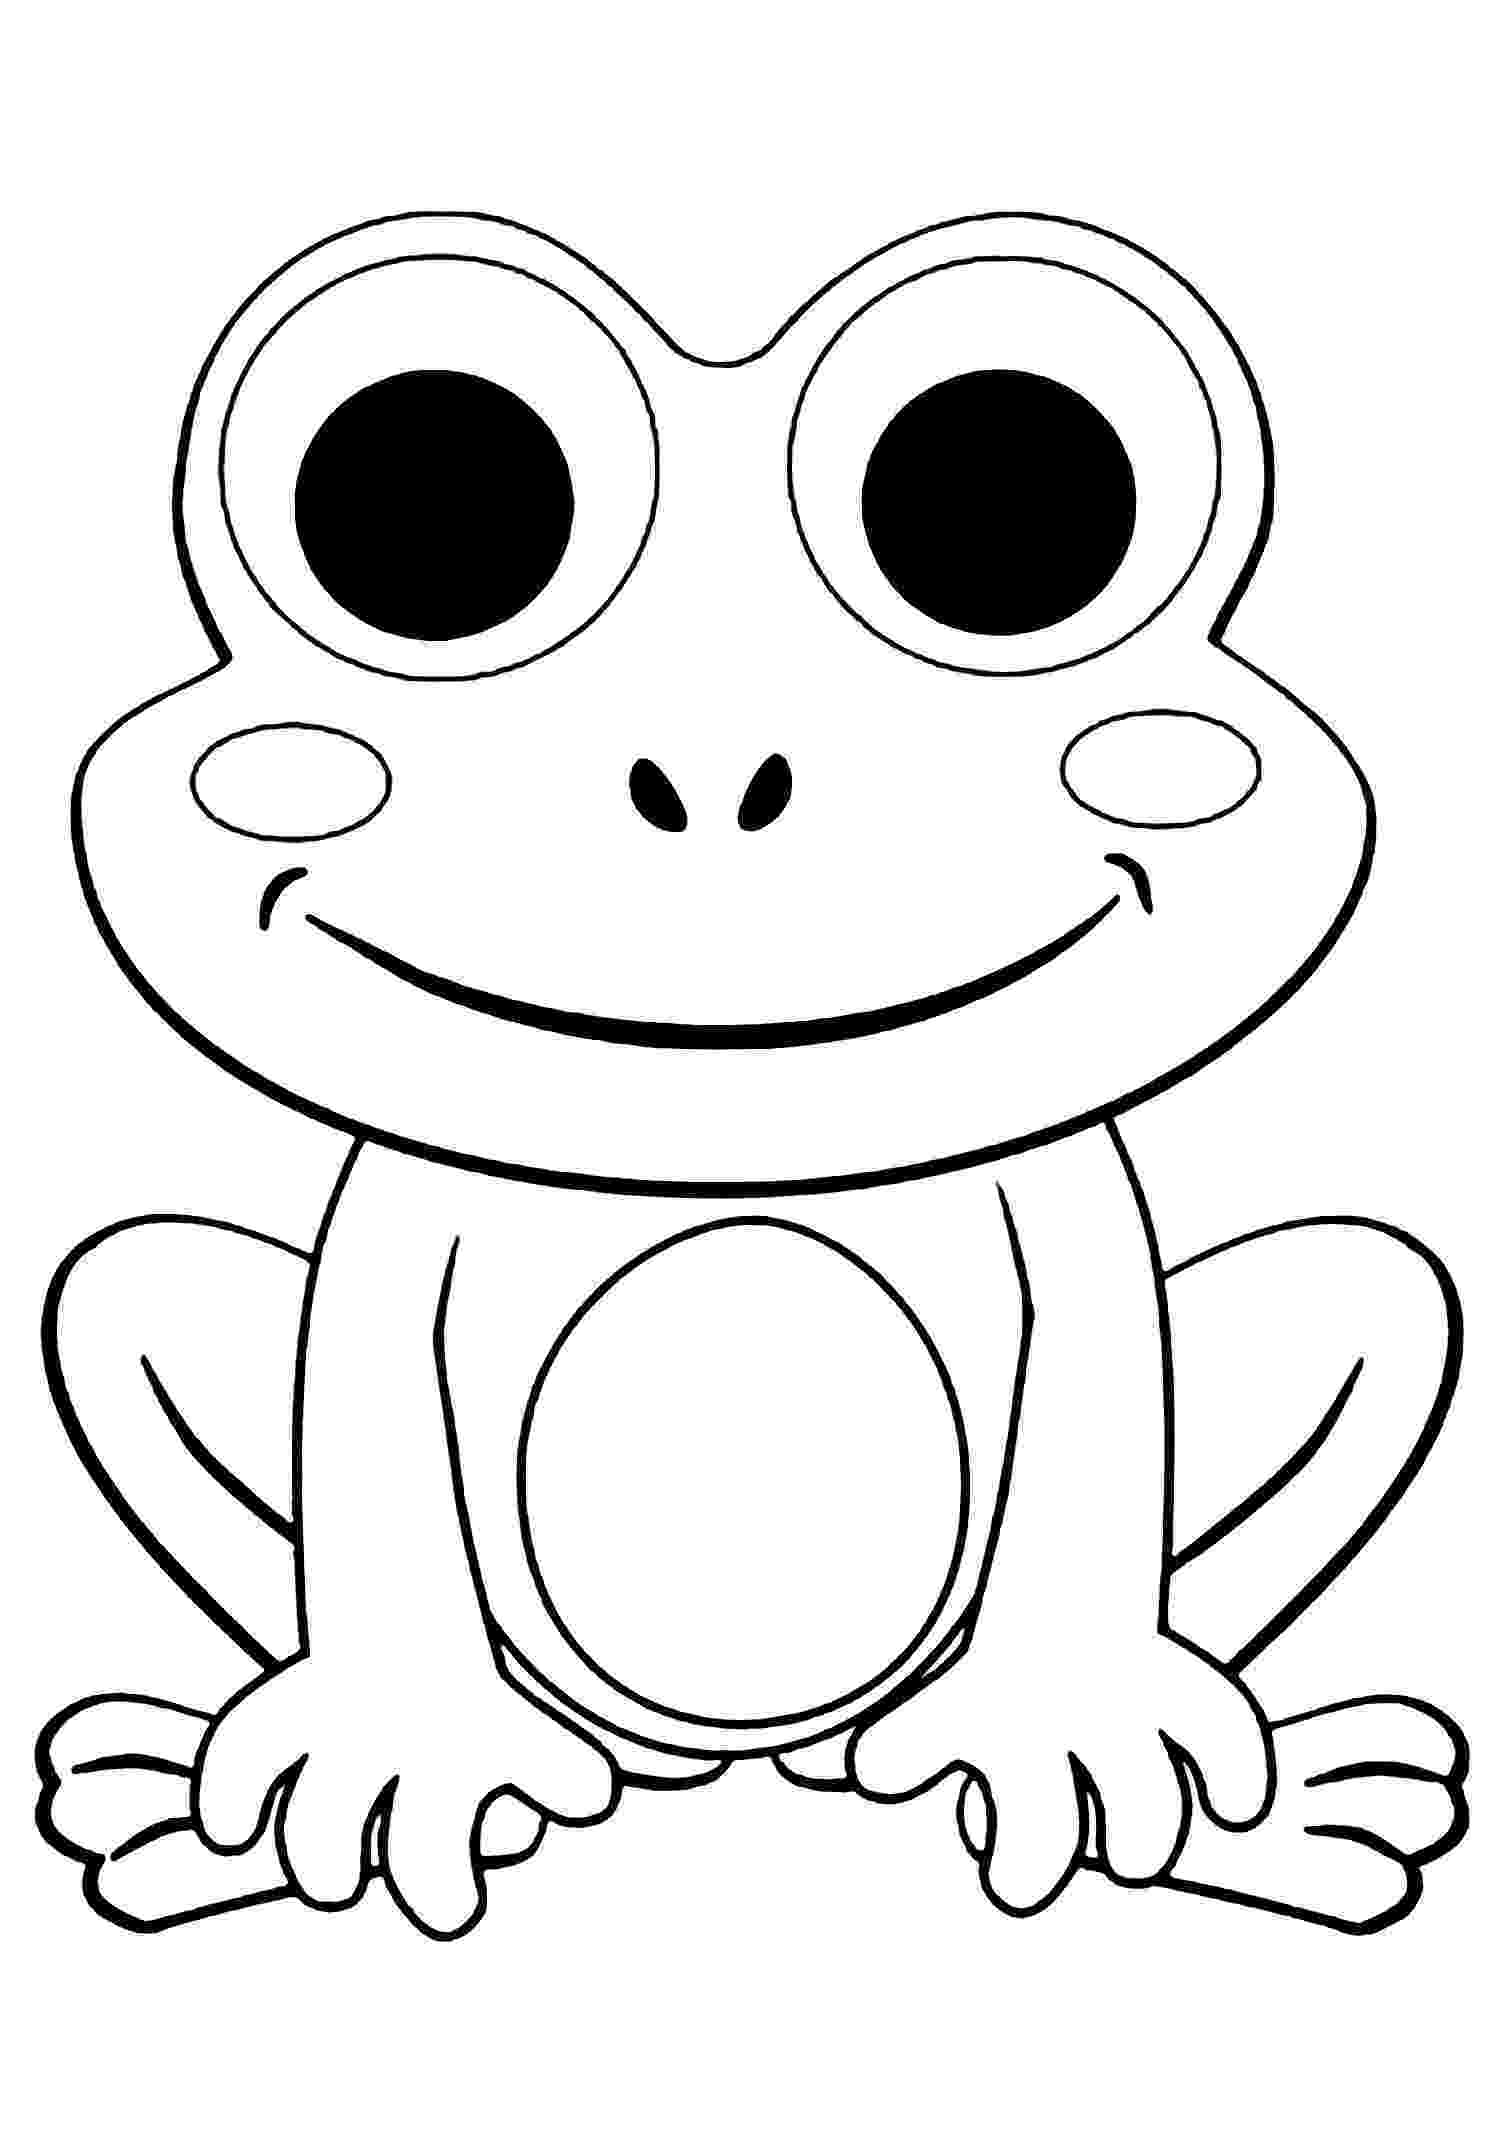 frog to color frogs to print for free frogs kids coloring pages color frog to